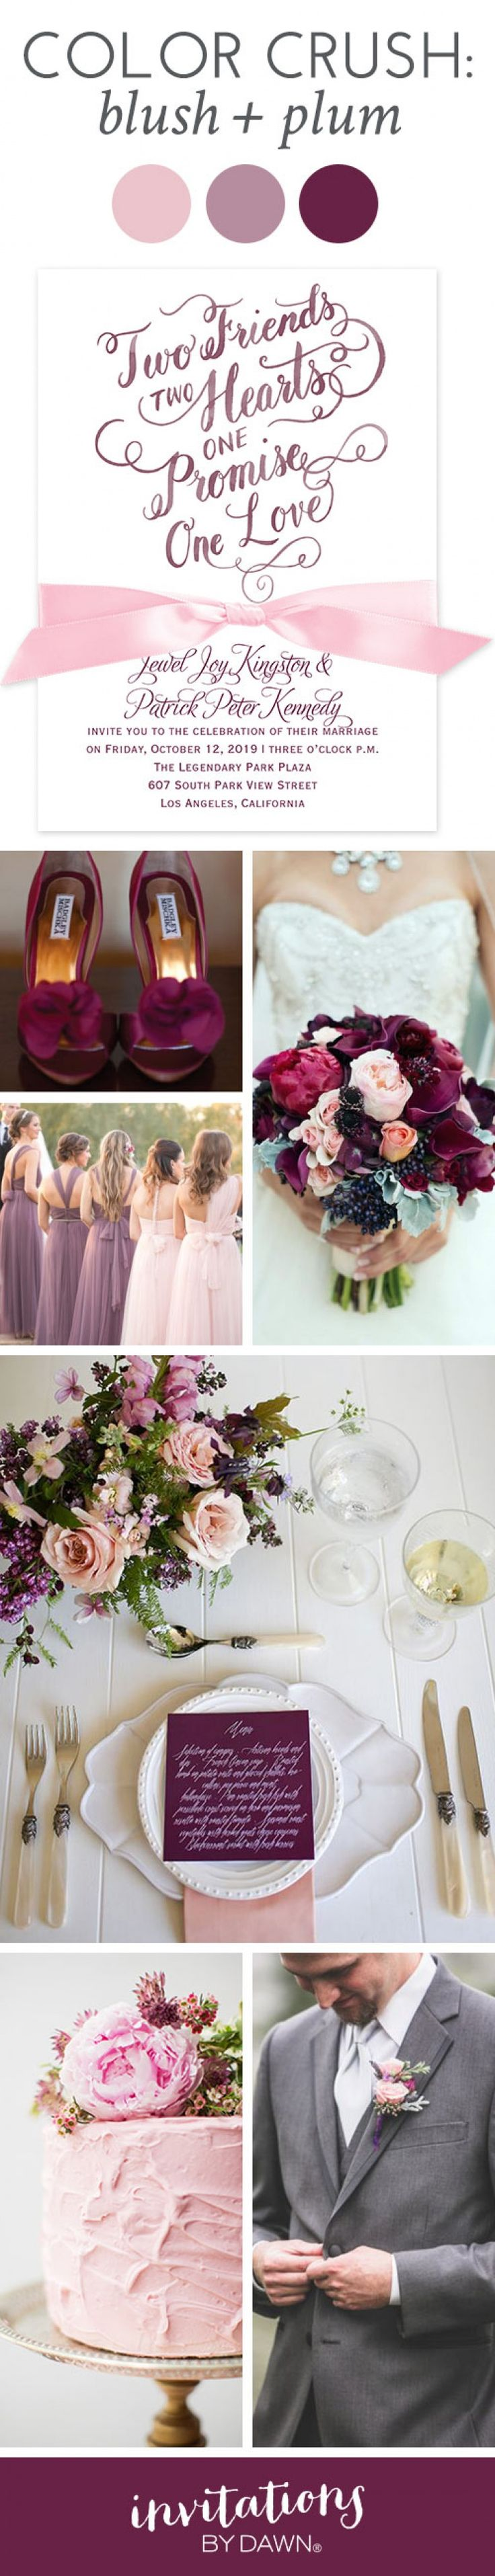 2274 best cheap wedding invitations images on pinterest dream color crush blush and plum izmirmasajfo